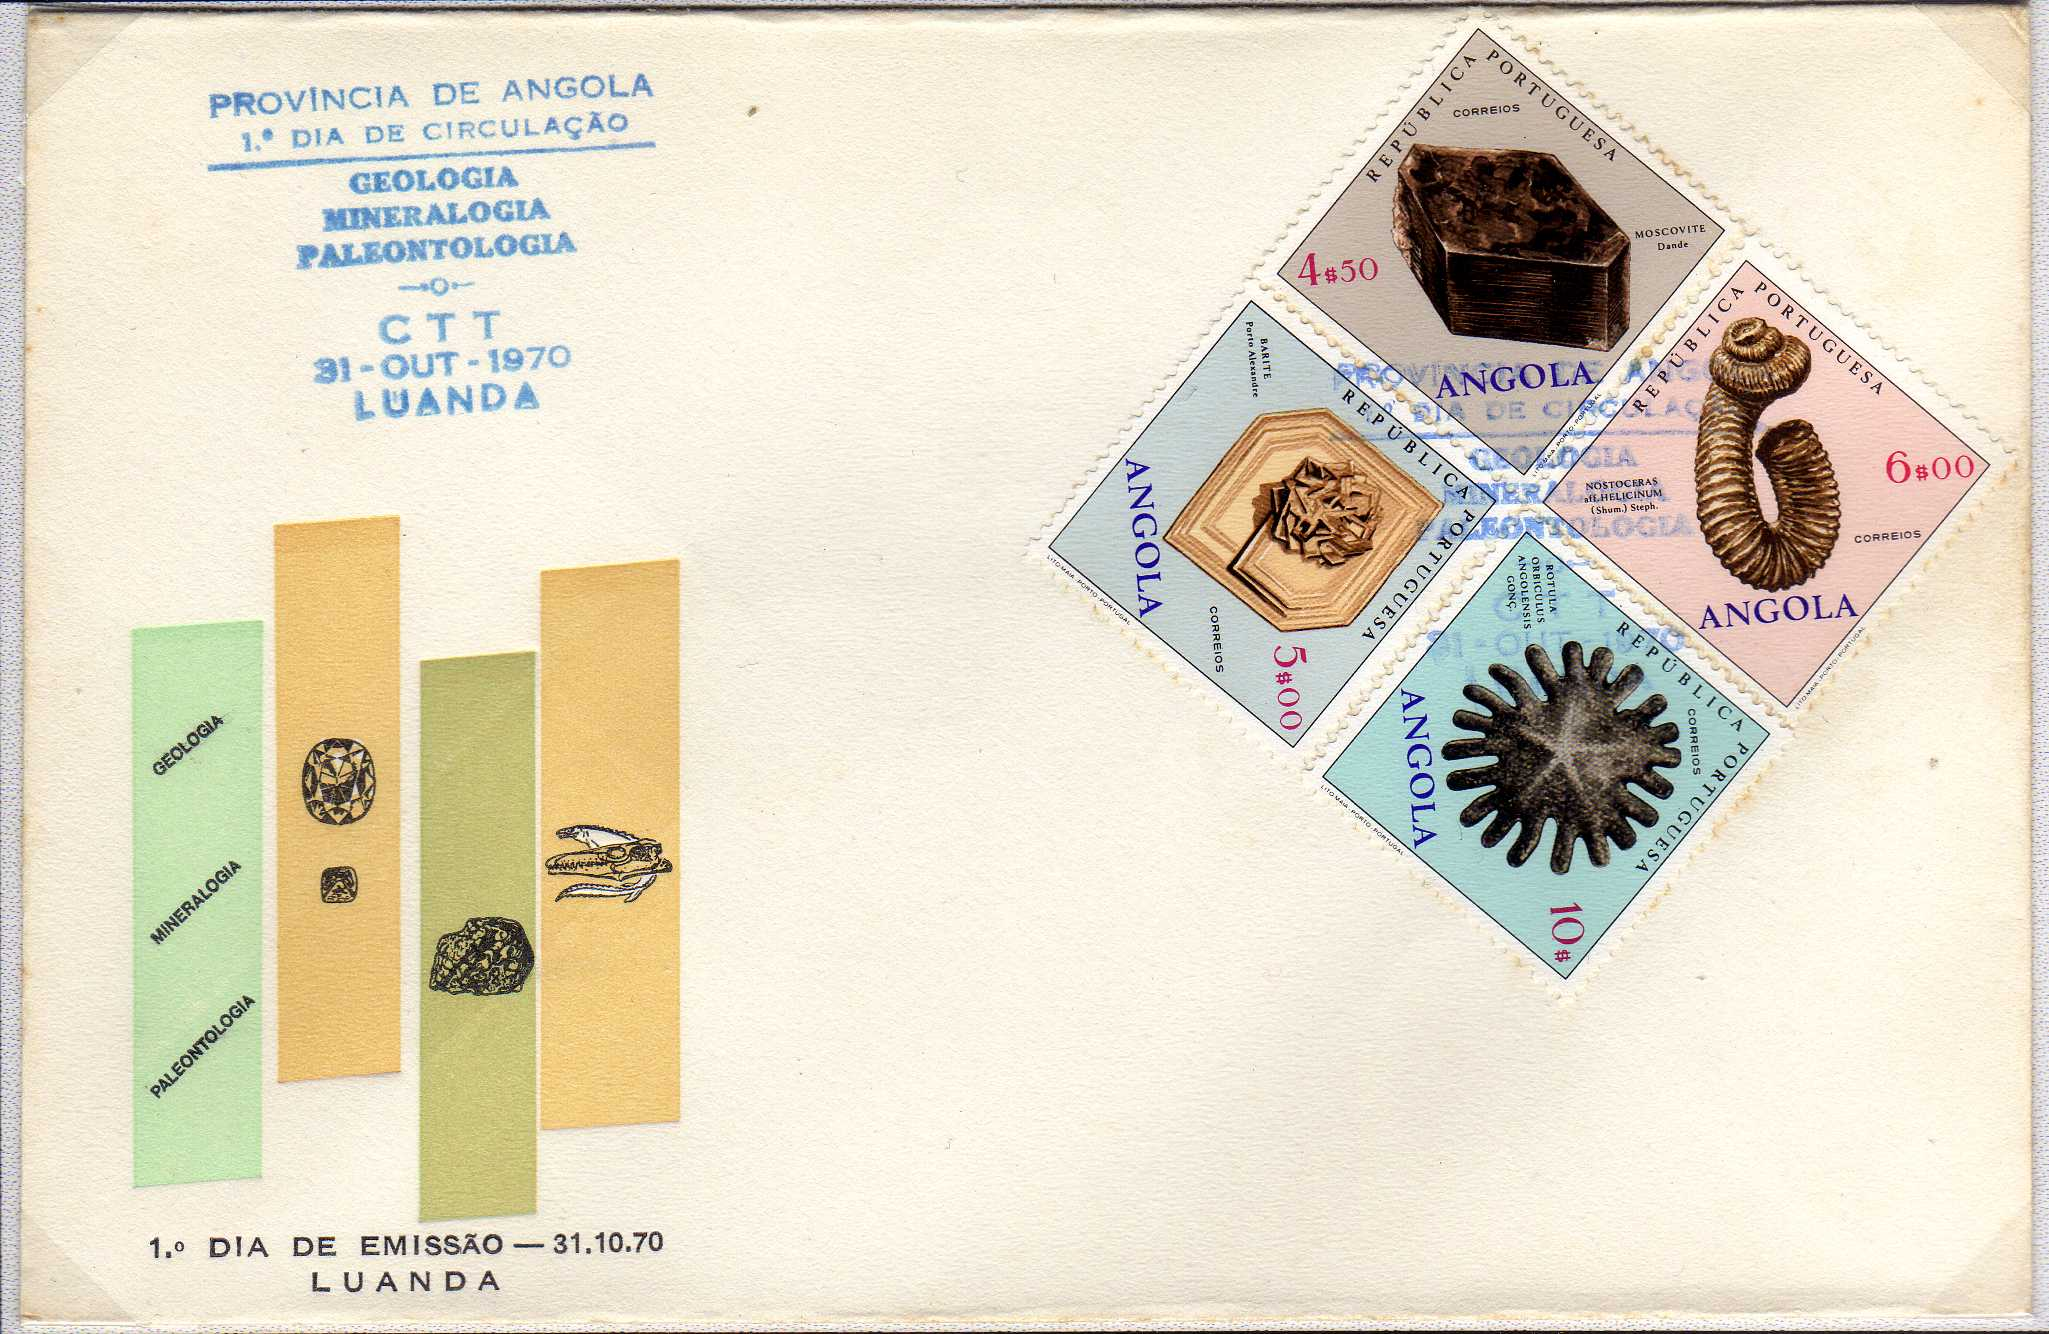 Angola 1970 Fossils and Minerals from Angola j.jpg